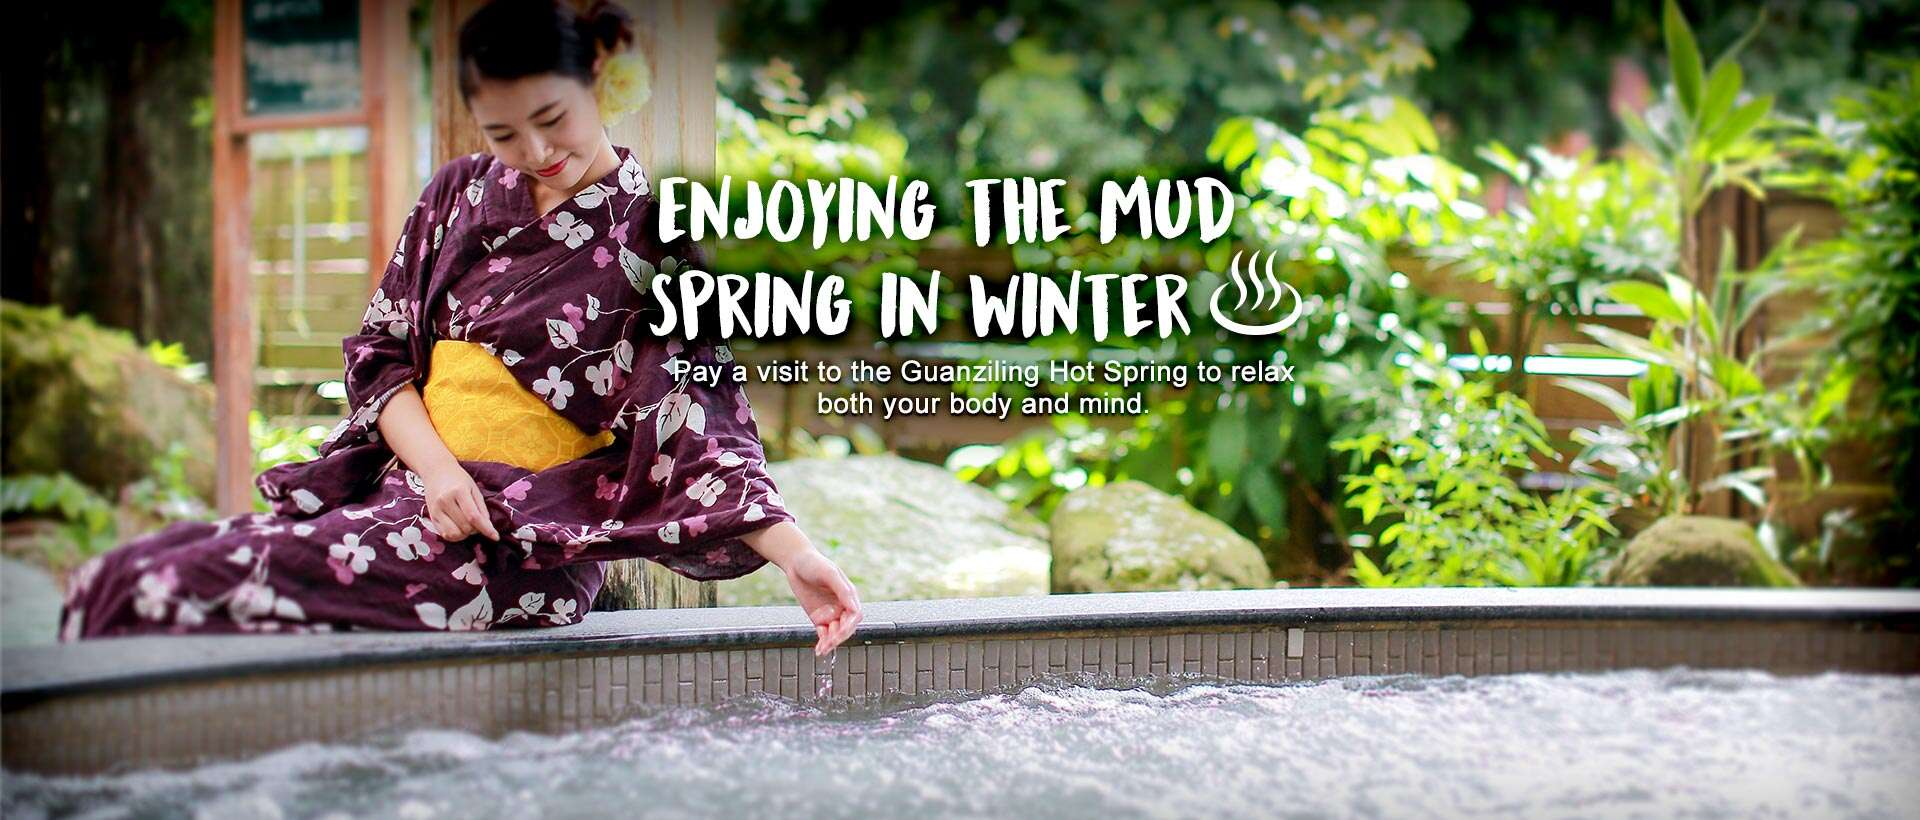 Enjoying the mud spring in winter